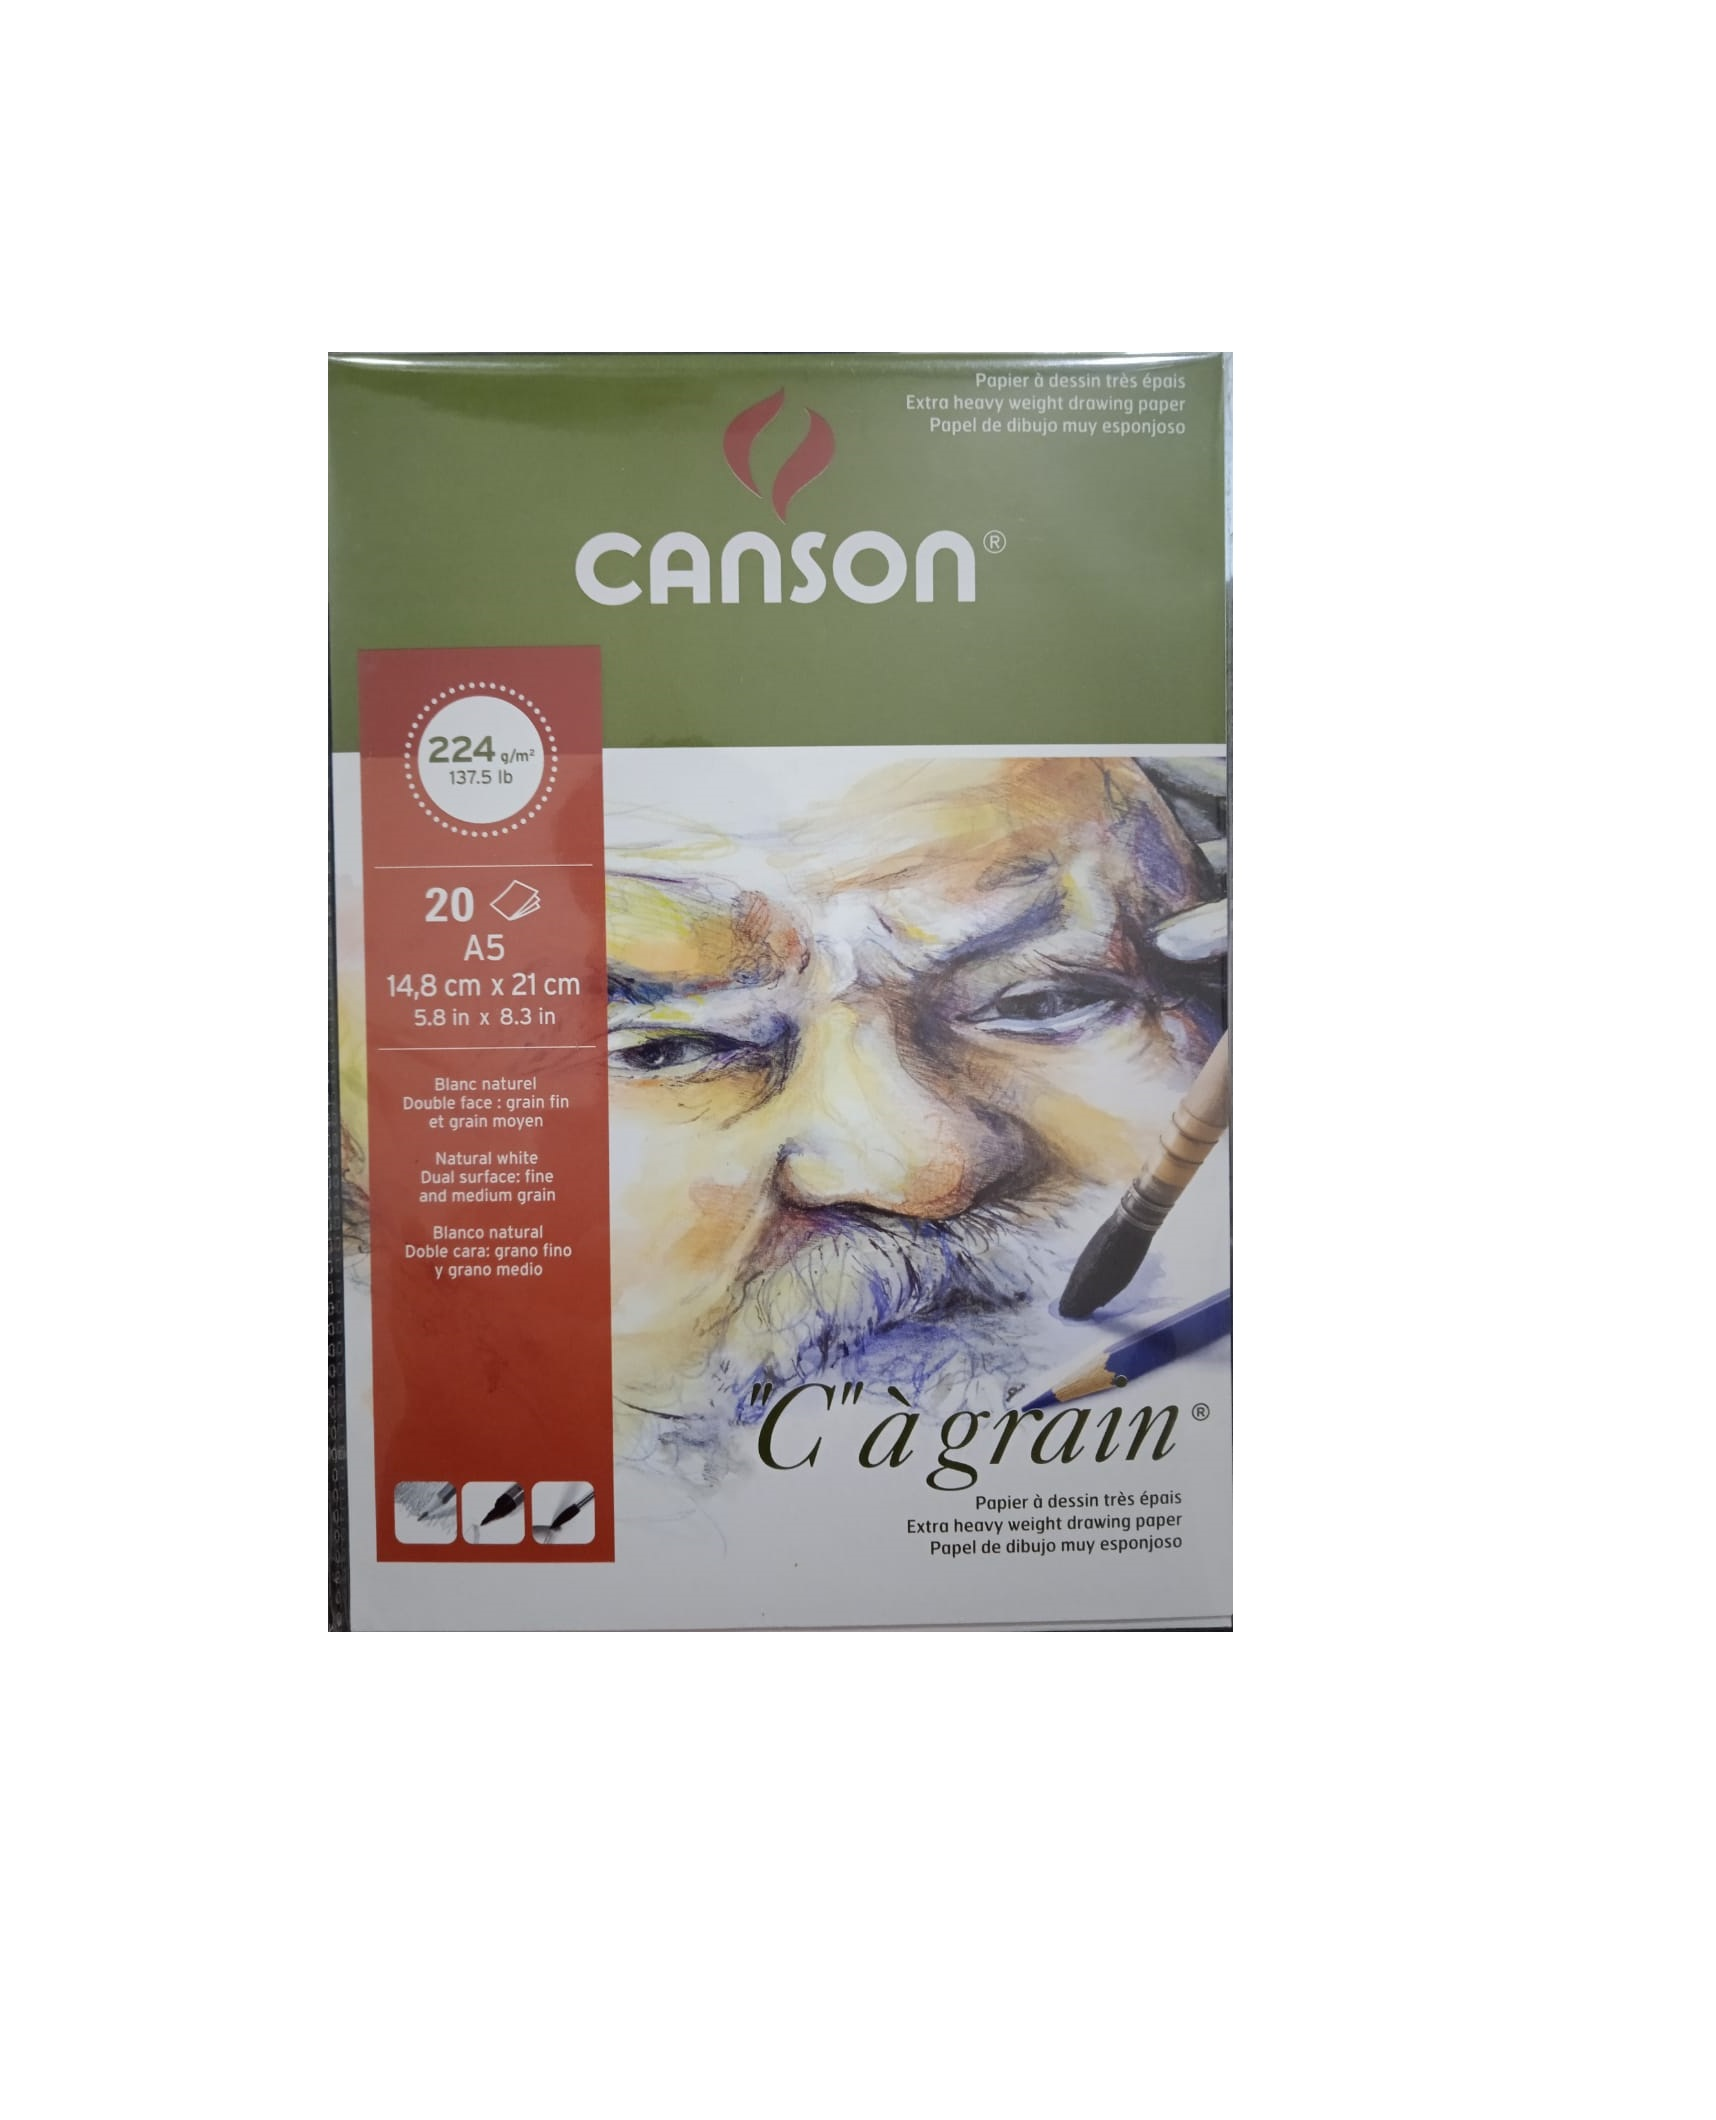 CANSON C-A GRAIN 224GSM DRAWING PAPER A5 SIZE (20 SHEETS)